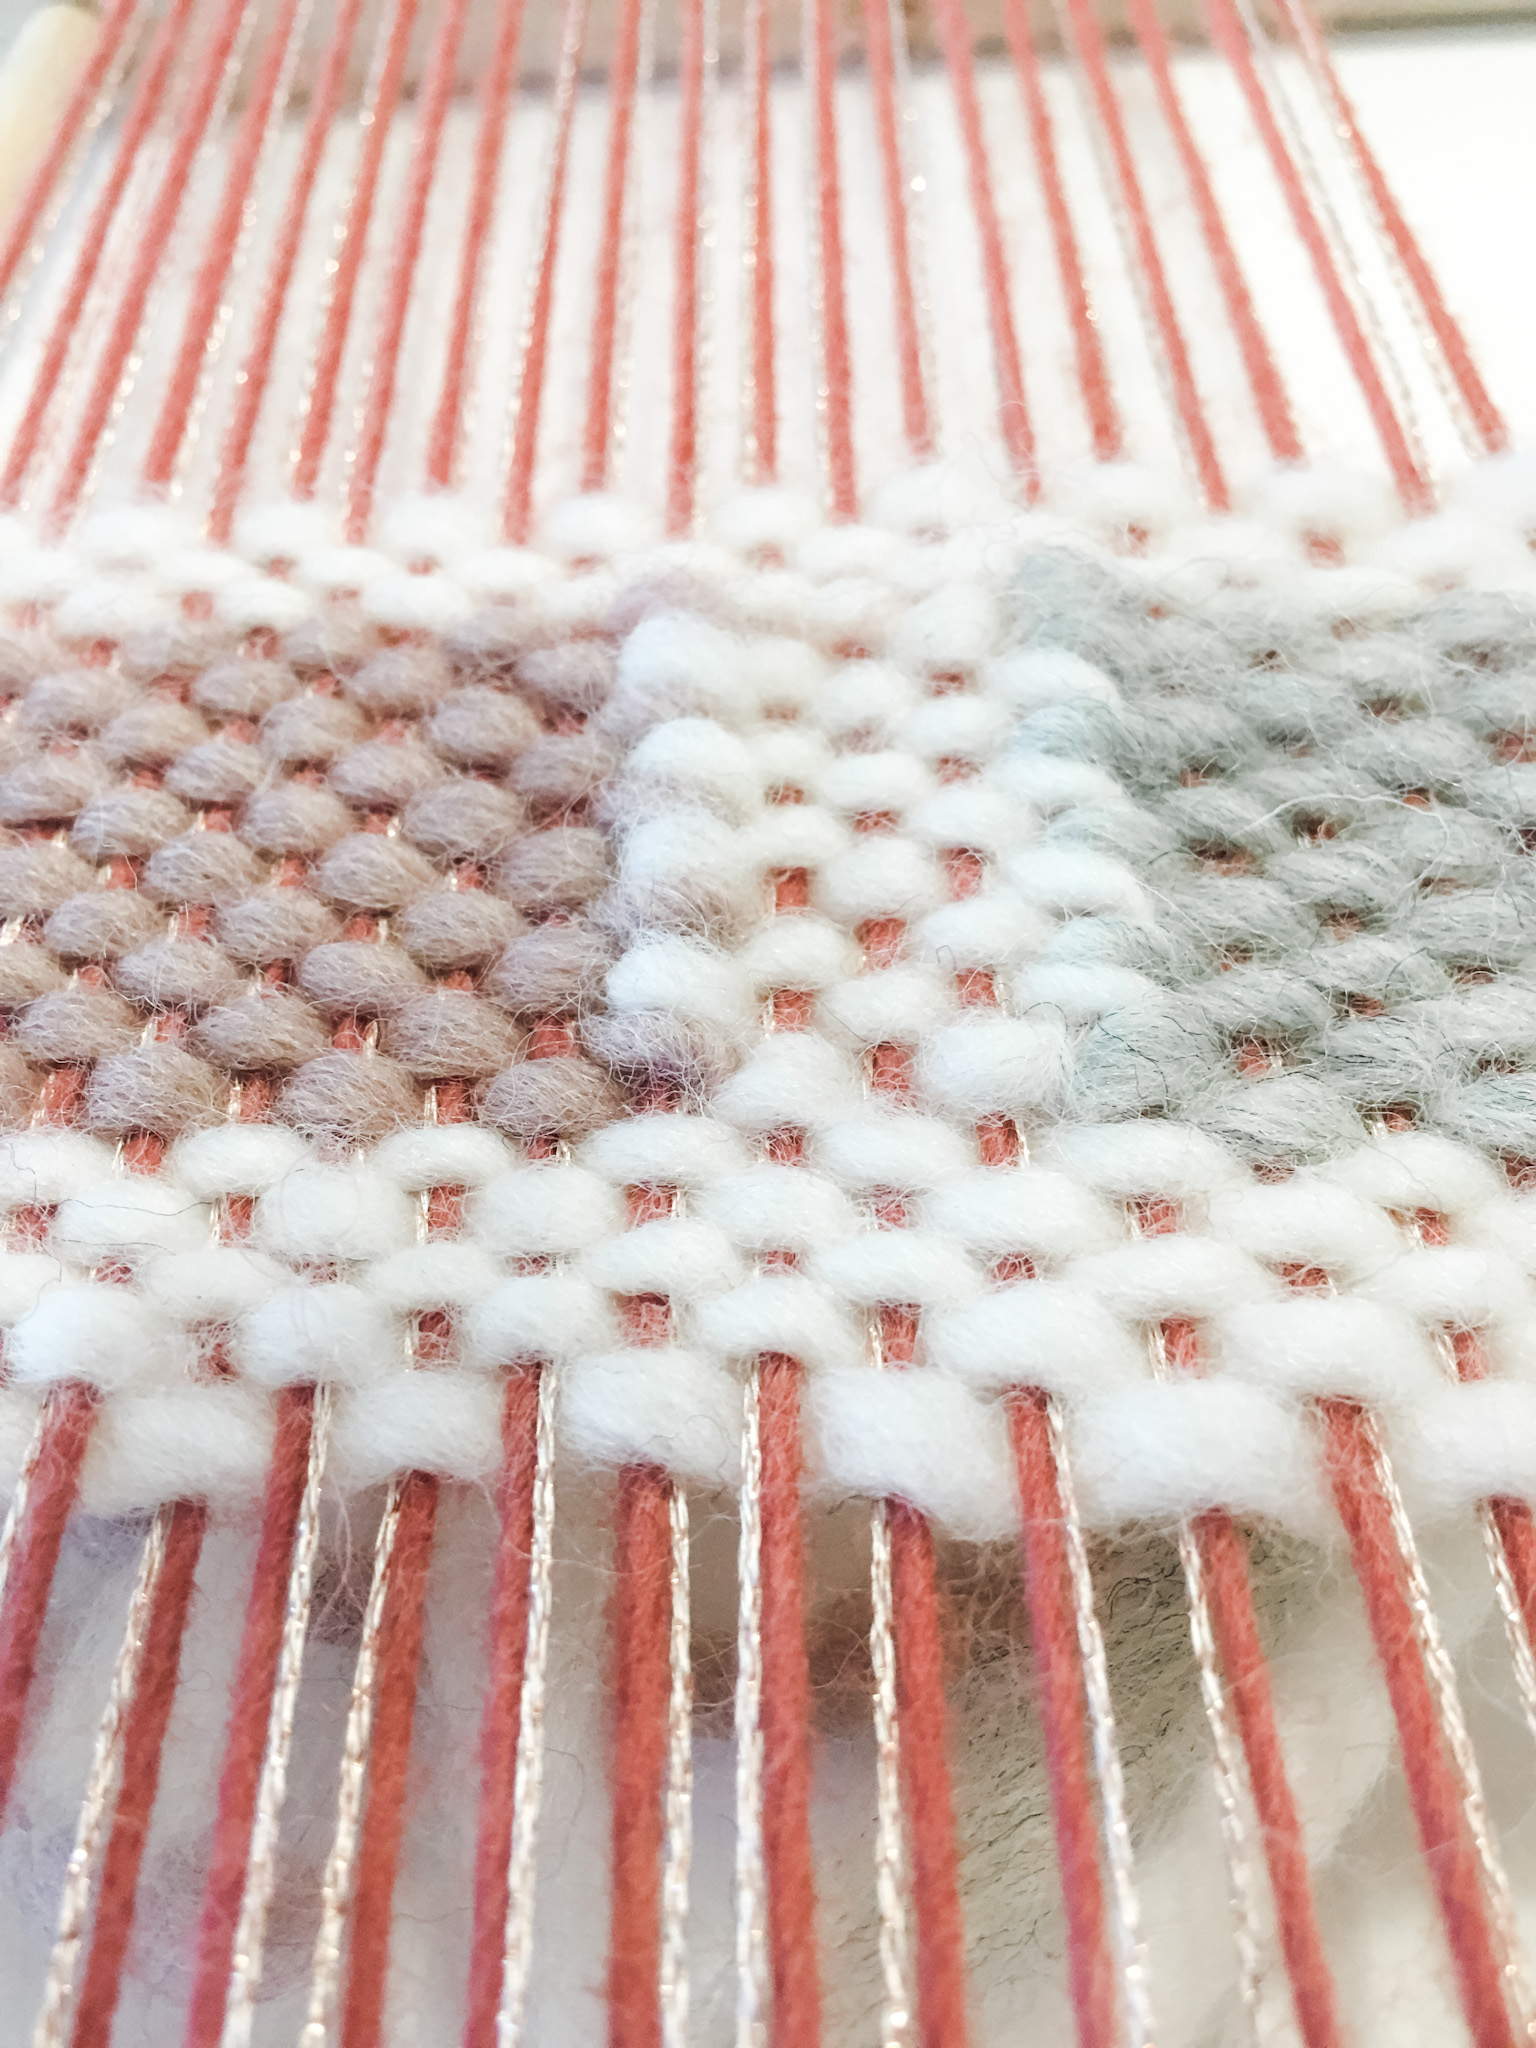 Weaving squares on the loom.